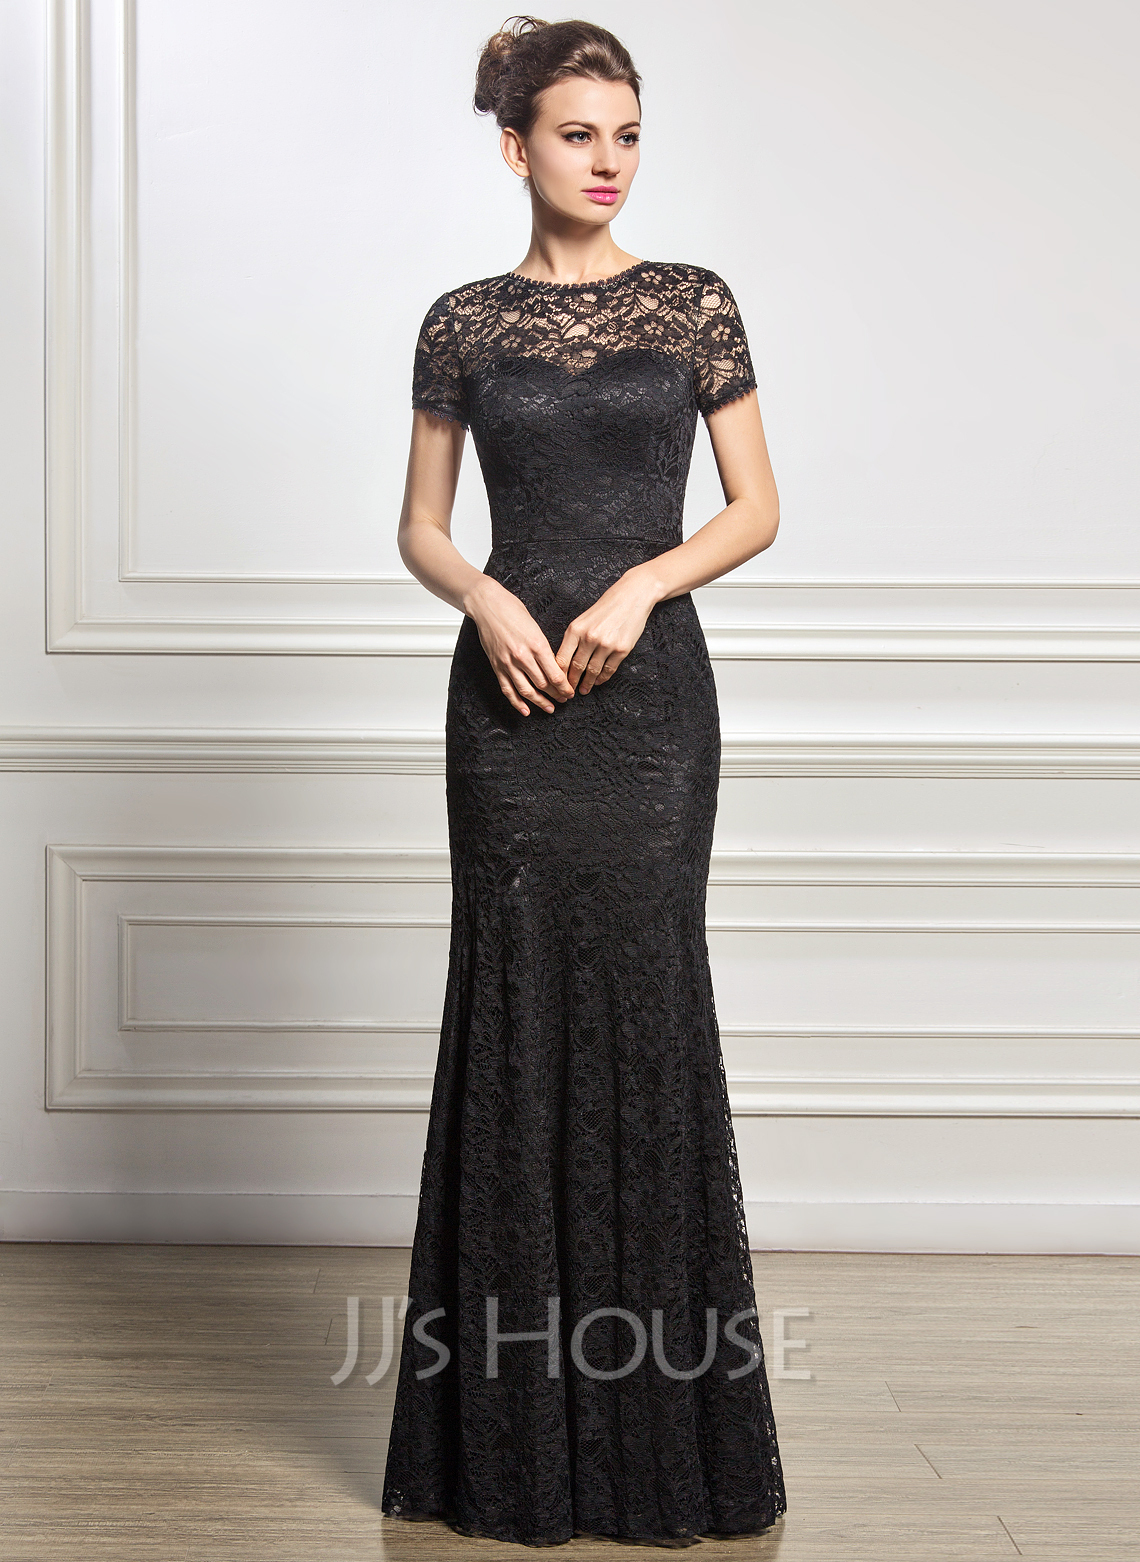 89ac3fae0c4 Trumpet Mermaid Scoop Neck Floor-Length Lace Mother of the Bride Dress.  Loading zoom